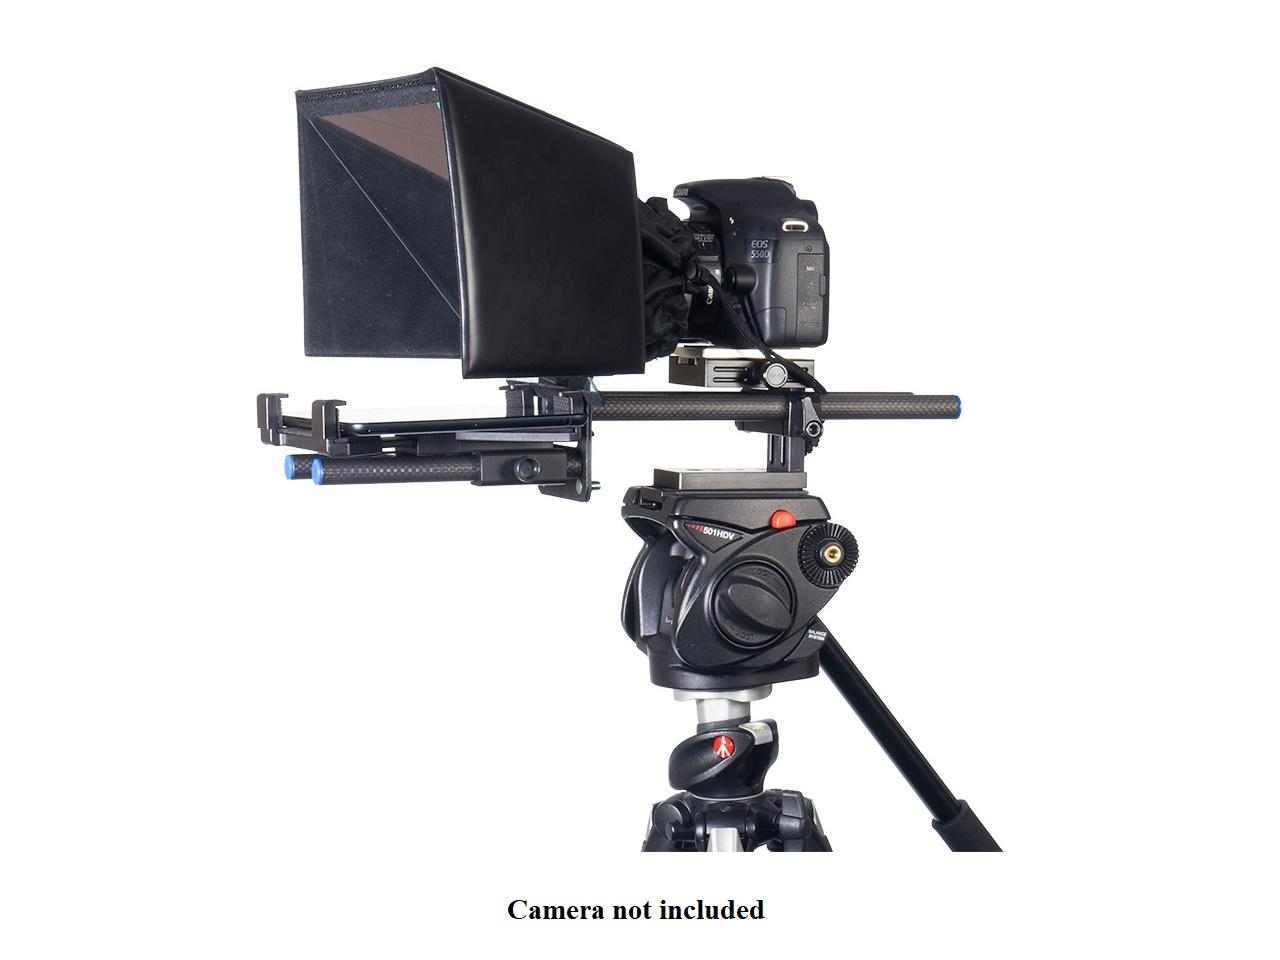 TP-500 DSLR Prompter Kit for iPad and Android Tablets by Datavideo